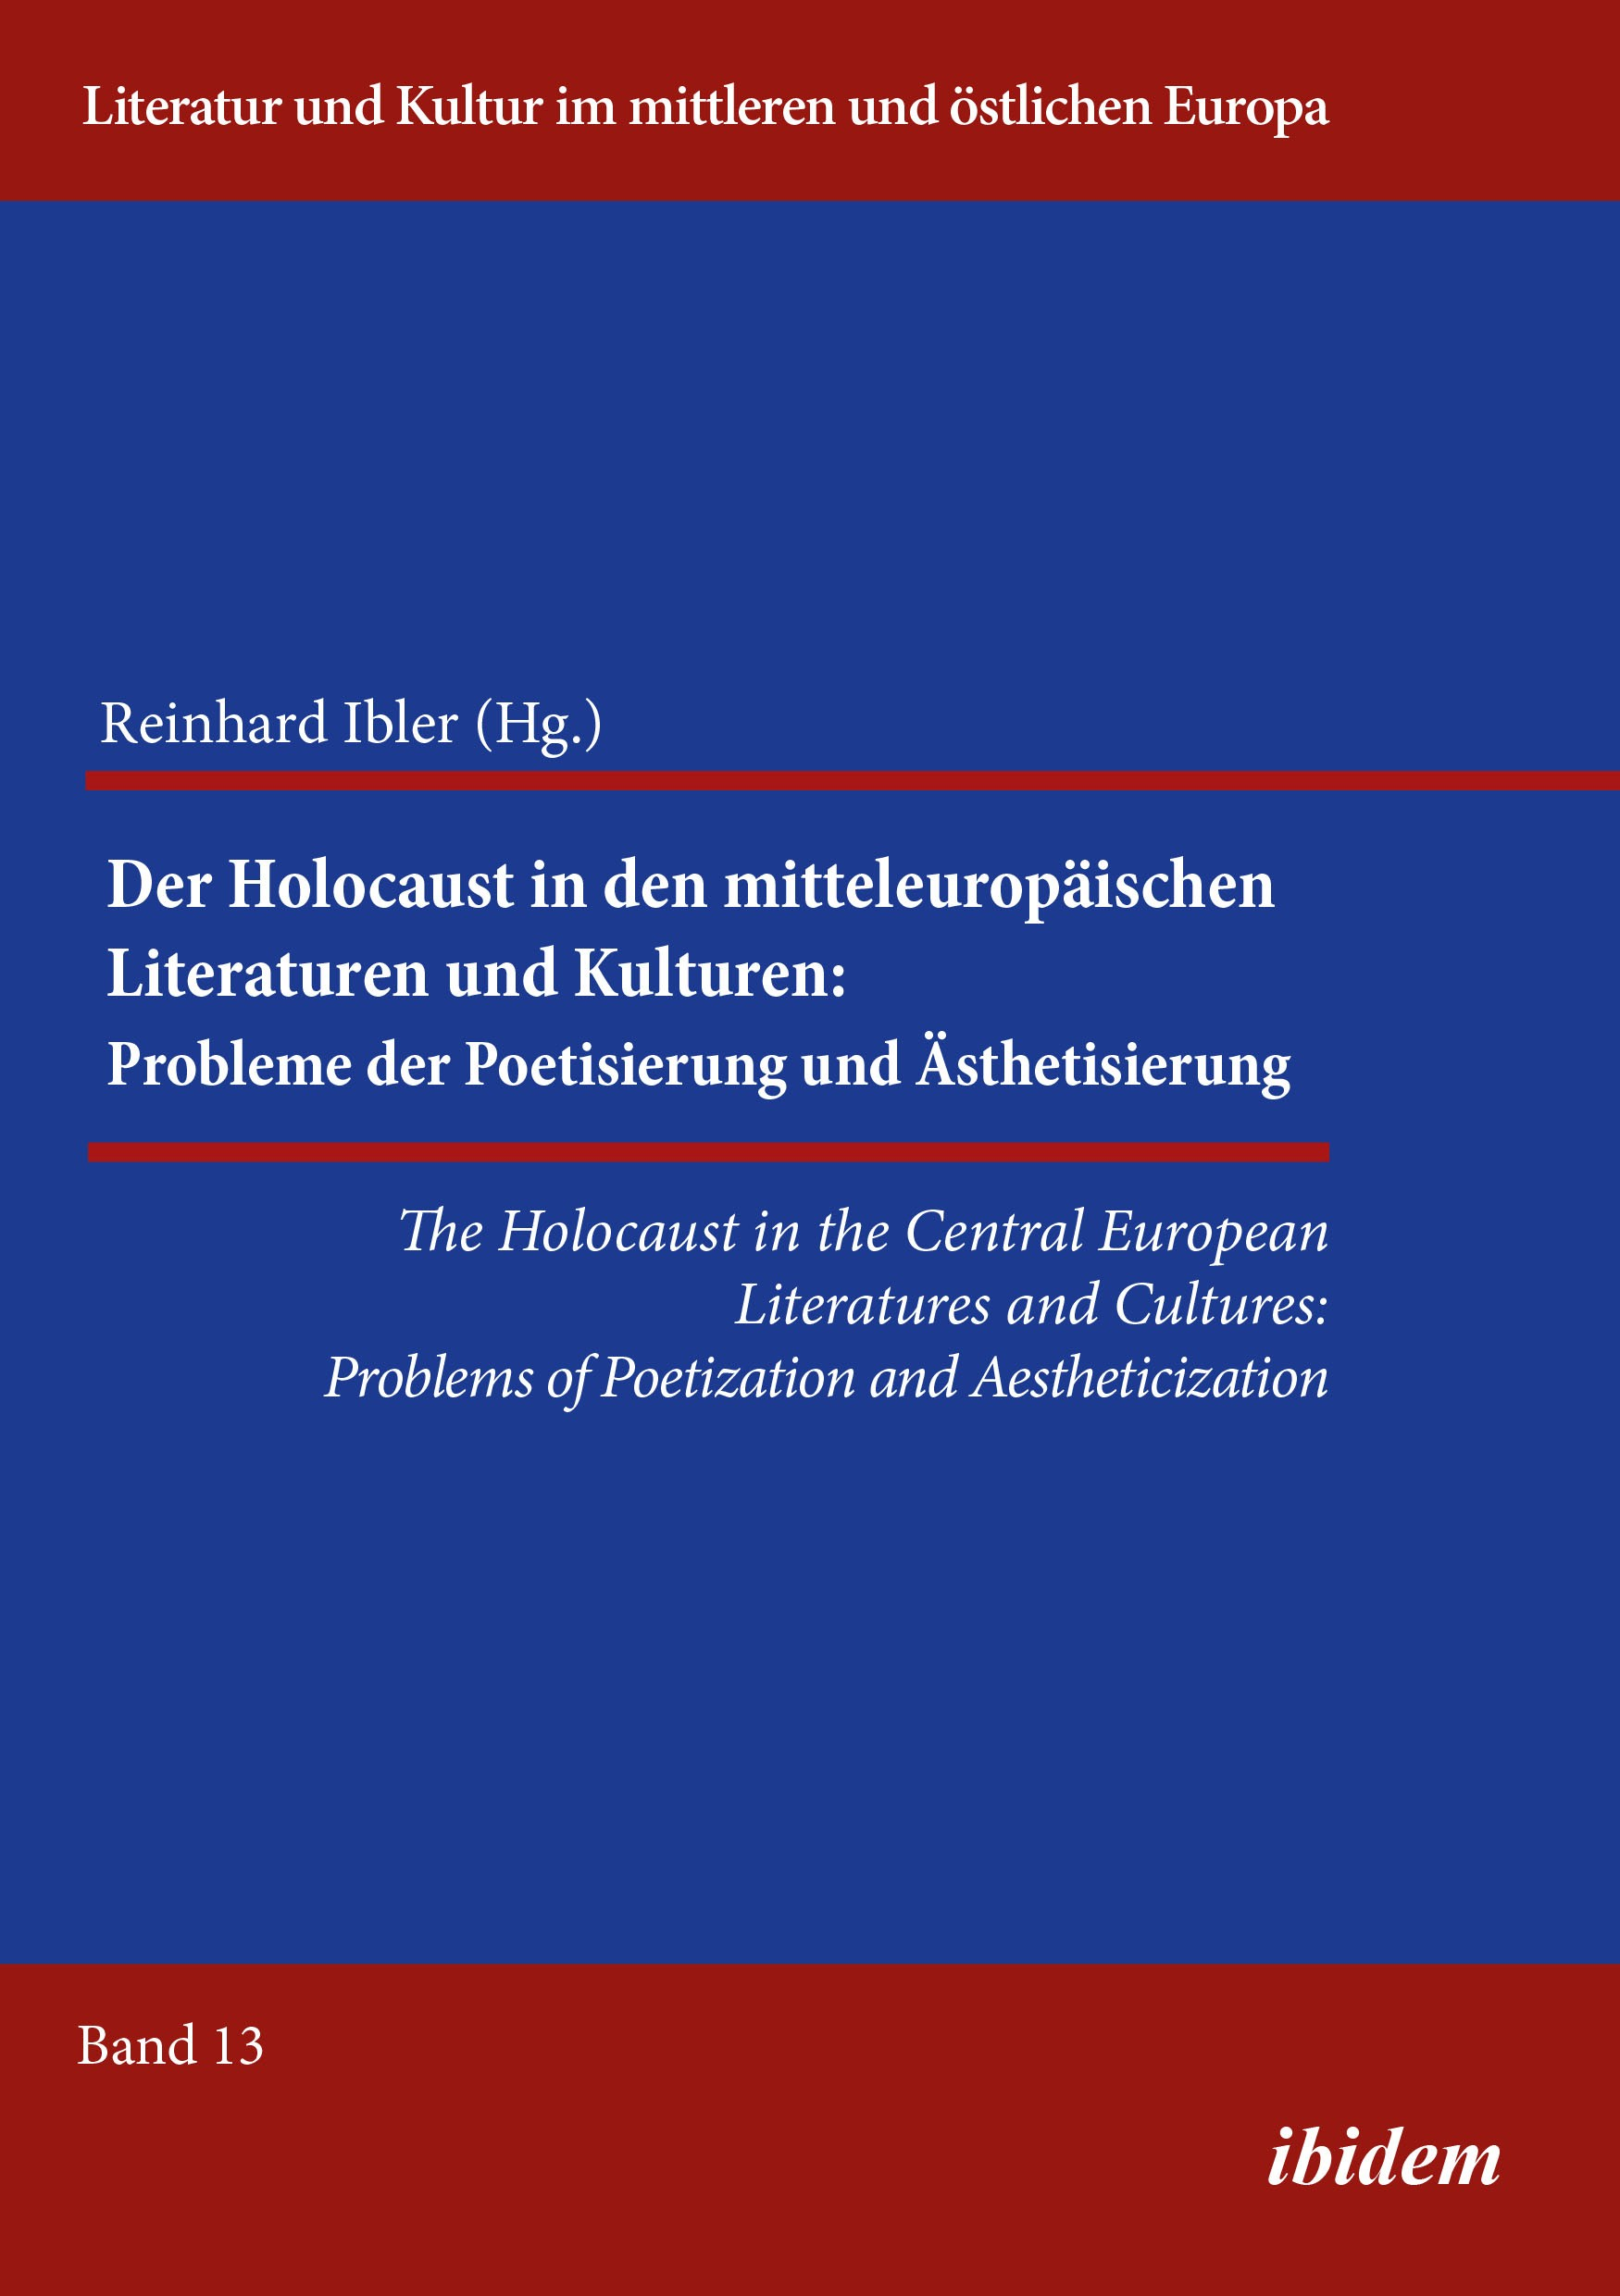 The Holocaust in the Central European Literatures and Cultures